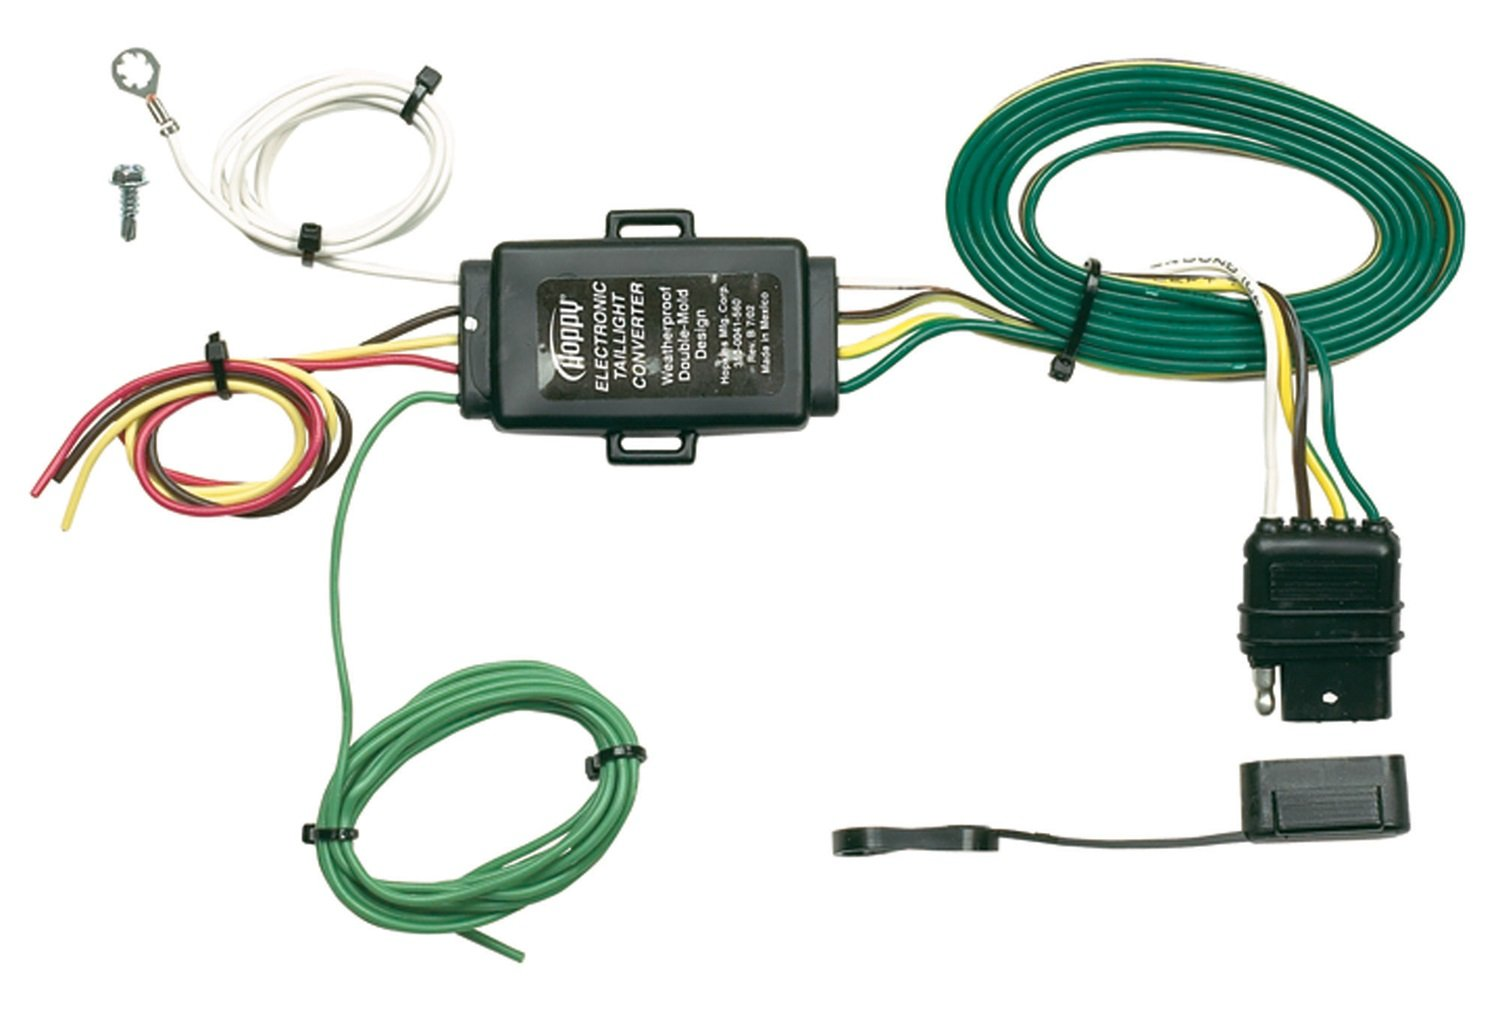 61WaHisQCLL._SL1500_ amazon com hopkins 48925 tail light converter with 4 wire flat 7 Pin Trailer Brake Wiring Diagram for Trailer at panicattacktreatment.co